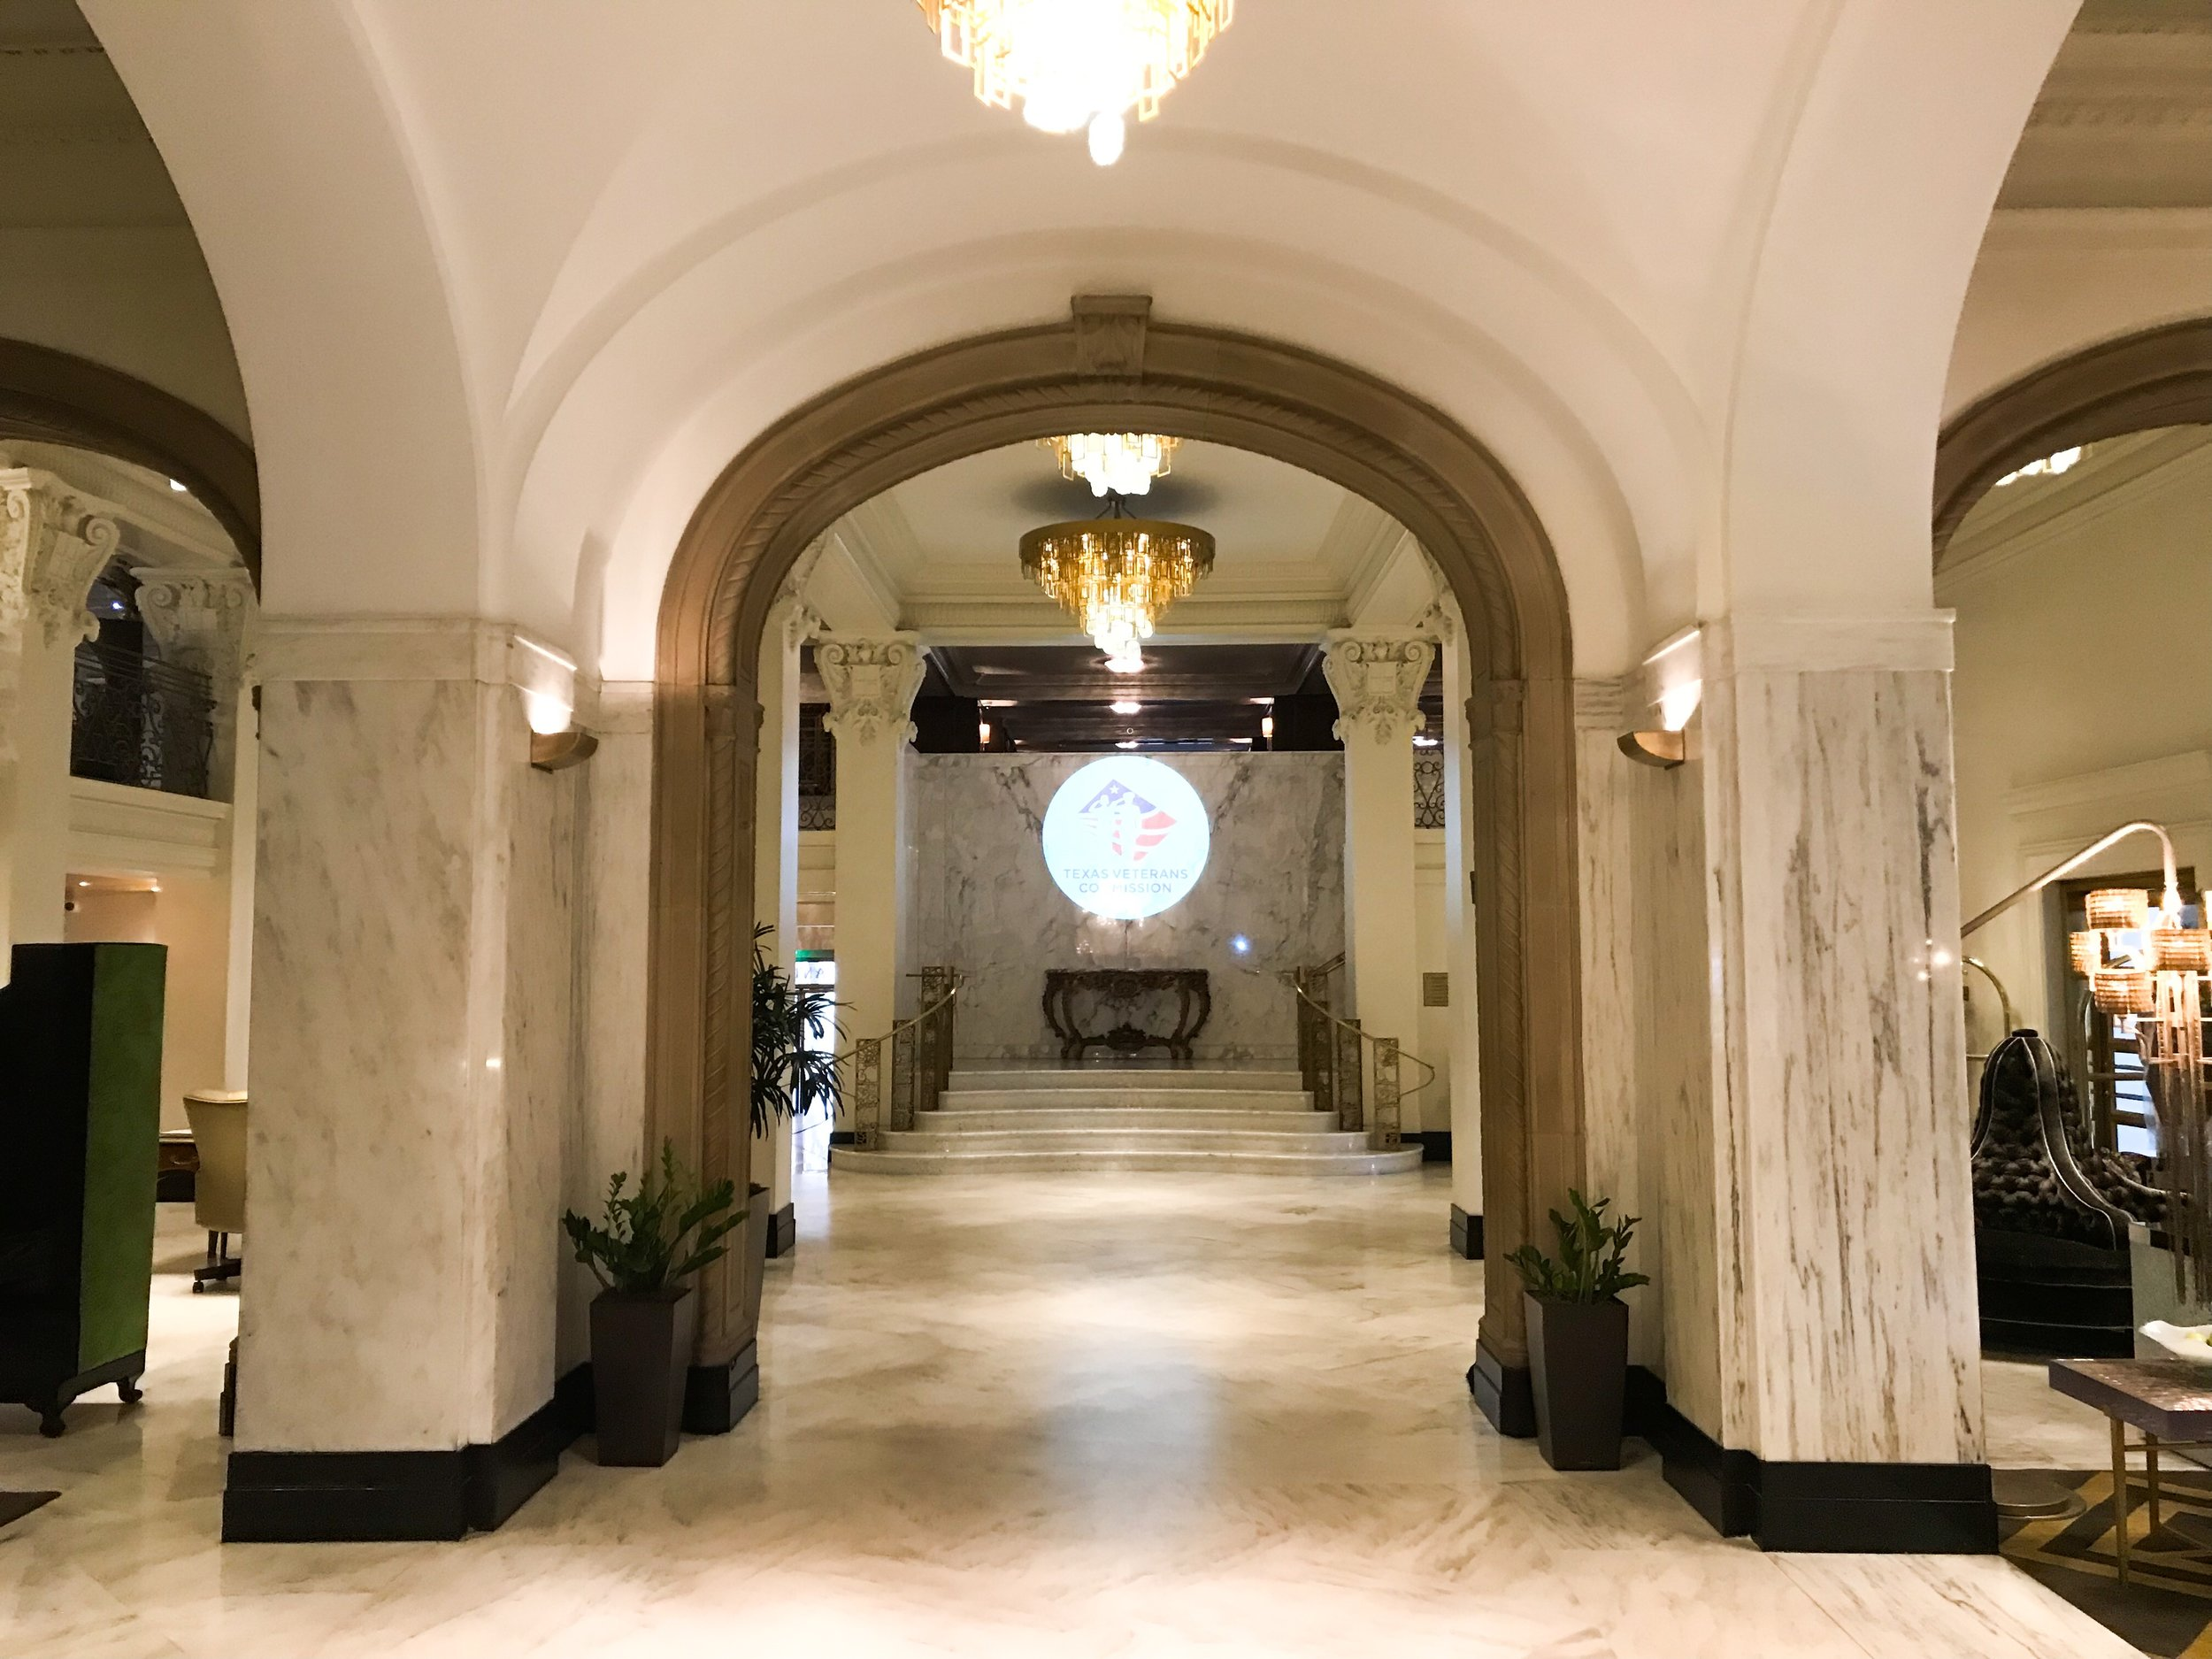 The check-in lobby